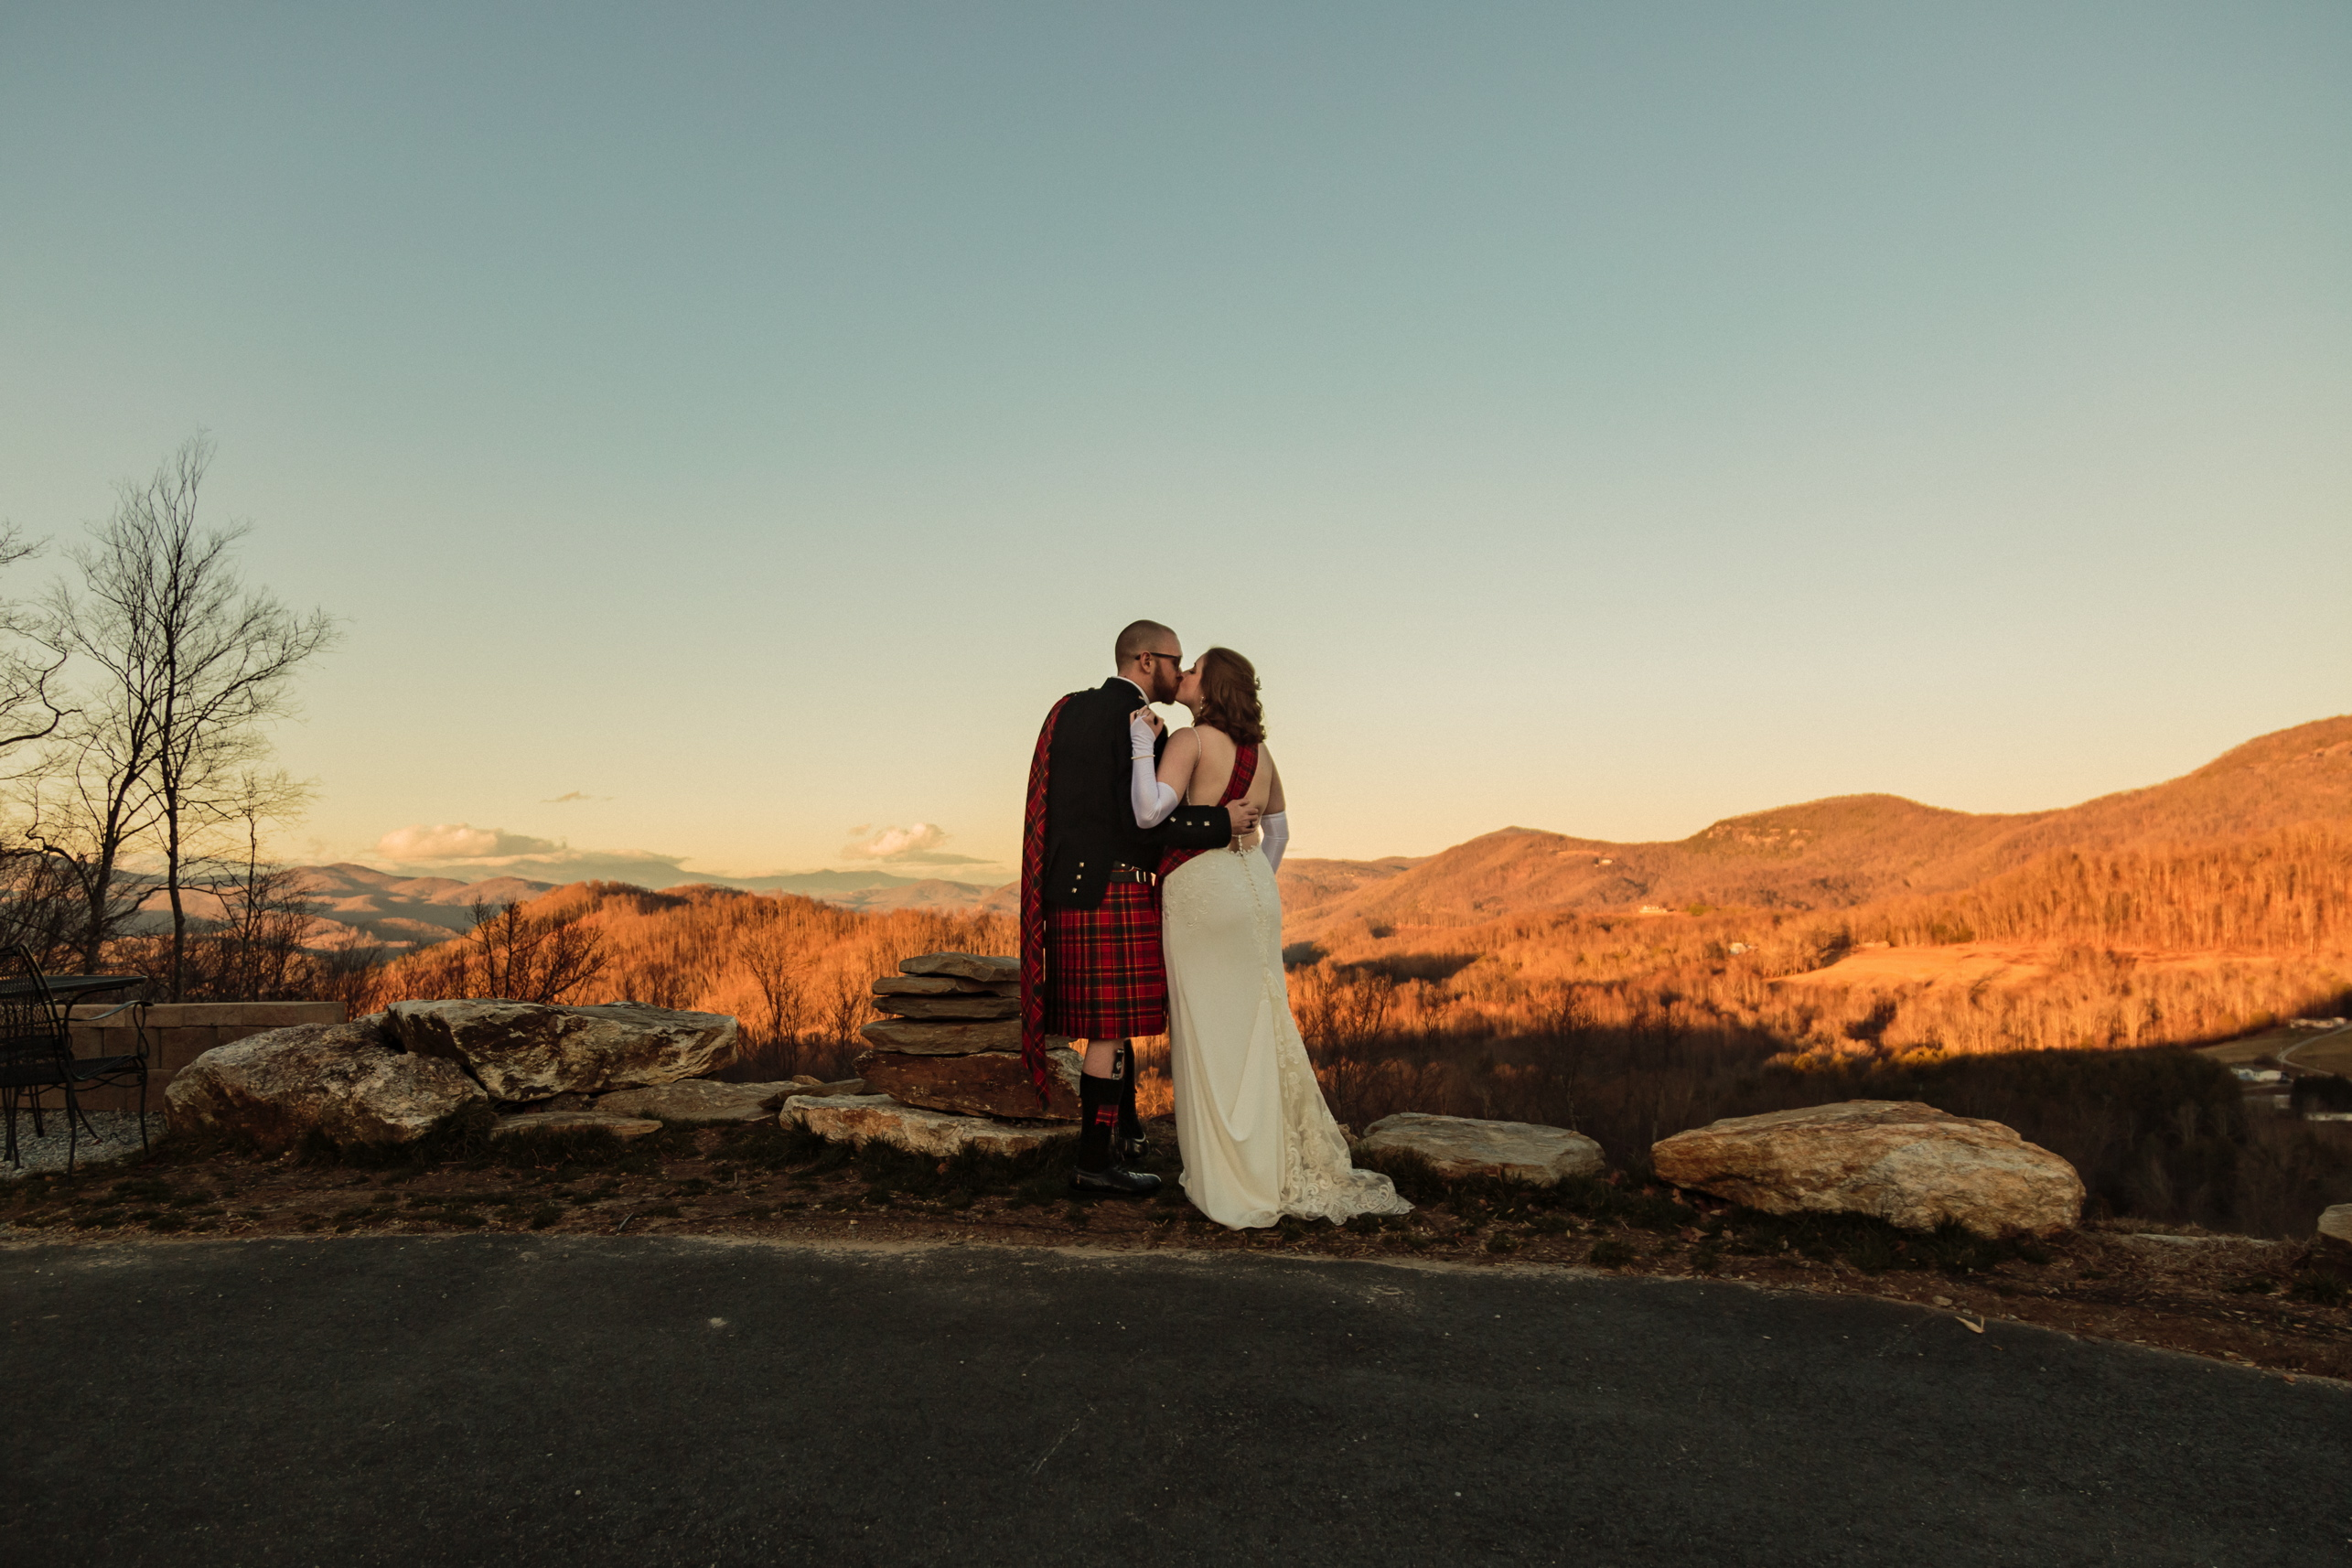 Bride & Groom with mountain views